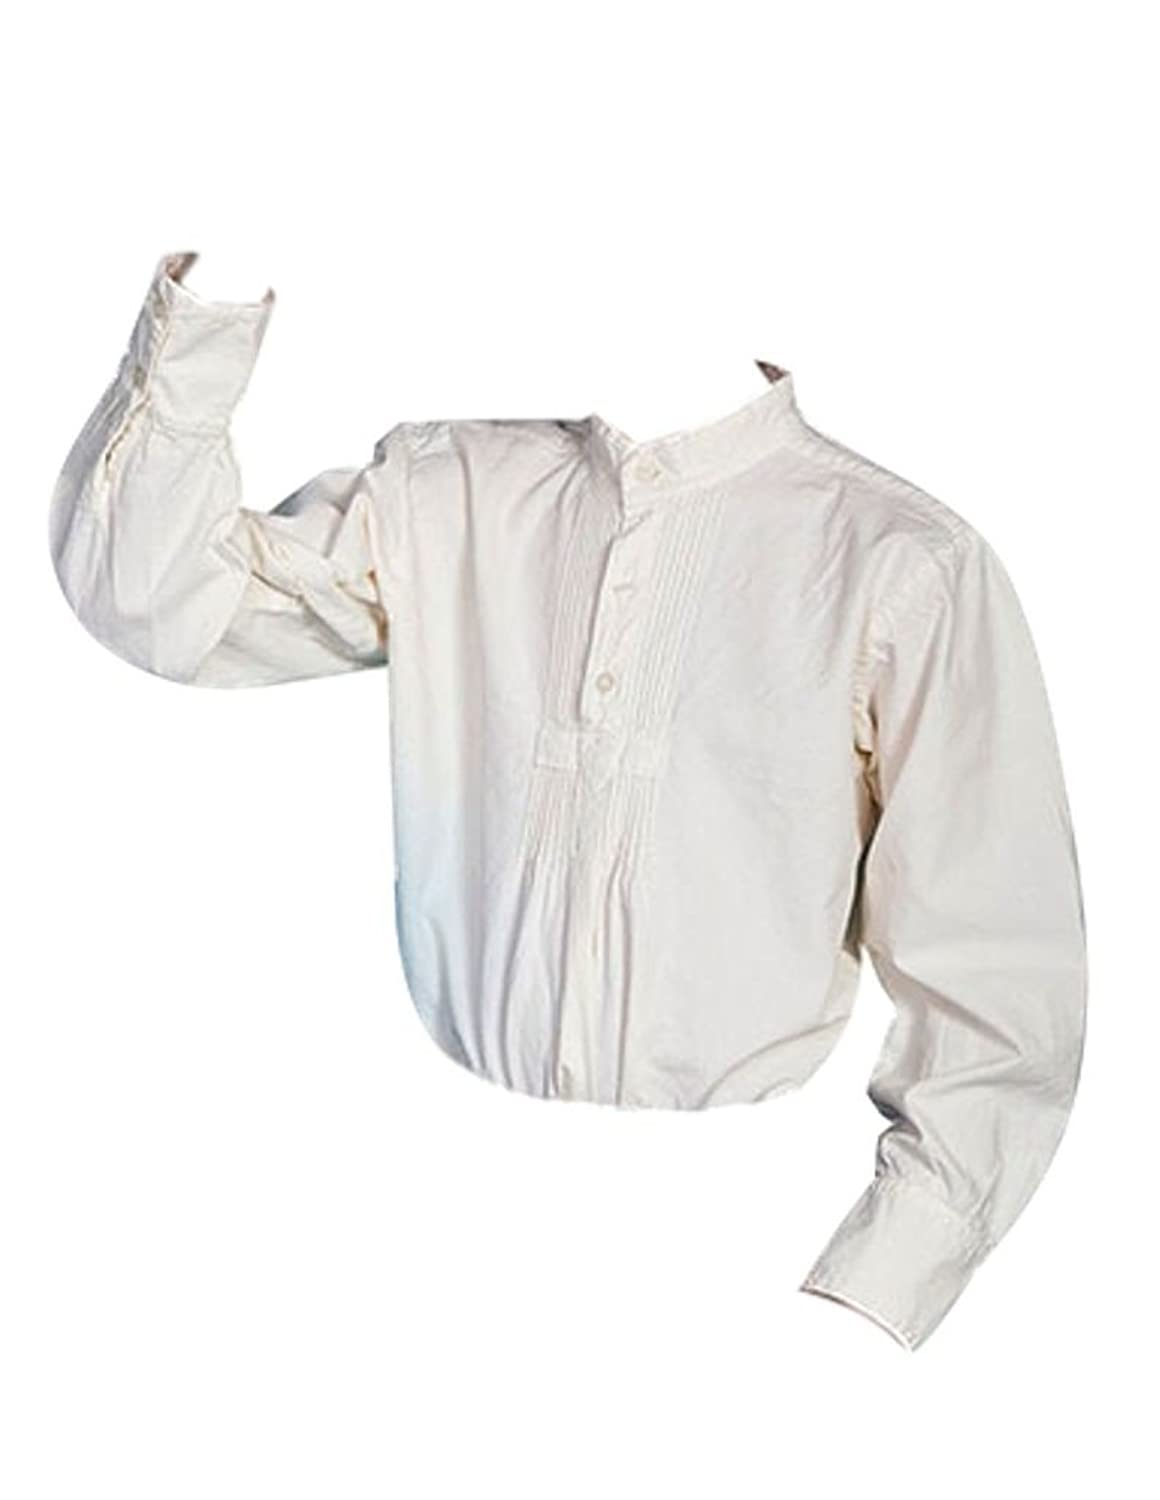 Victorian Kids Costumes & Shoes- Girls, Boys, Baby, Toddler Scully Boys Pleated Front Long Sleeve Shirt - 500020K WHT $37.52 AT vintagedancer.com